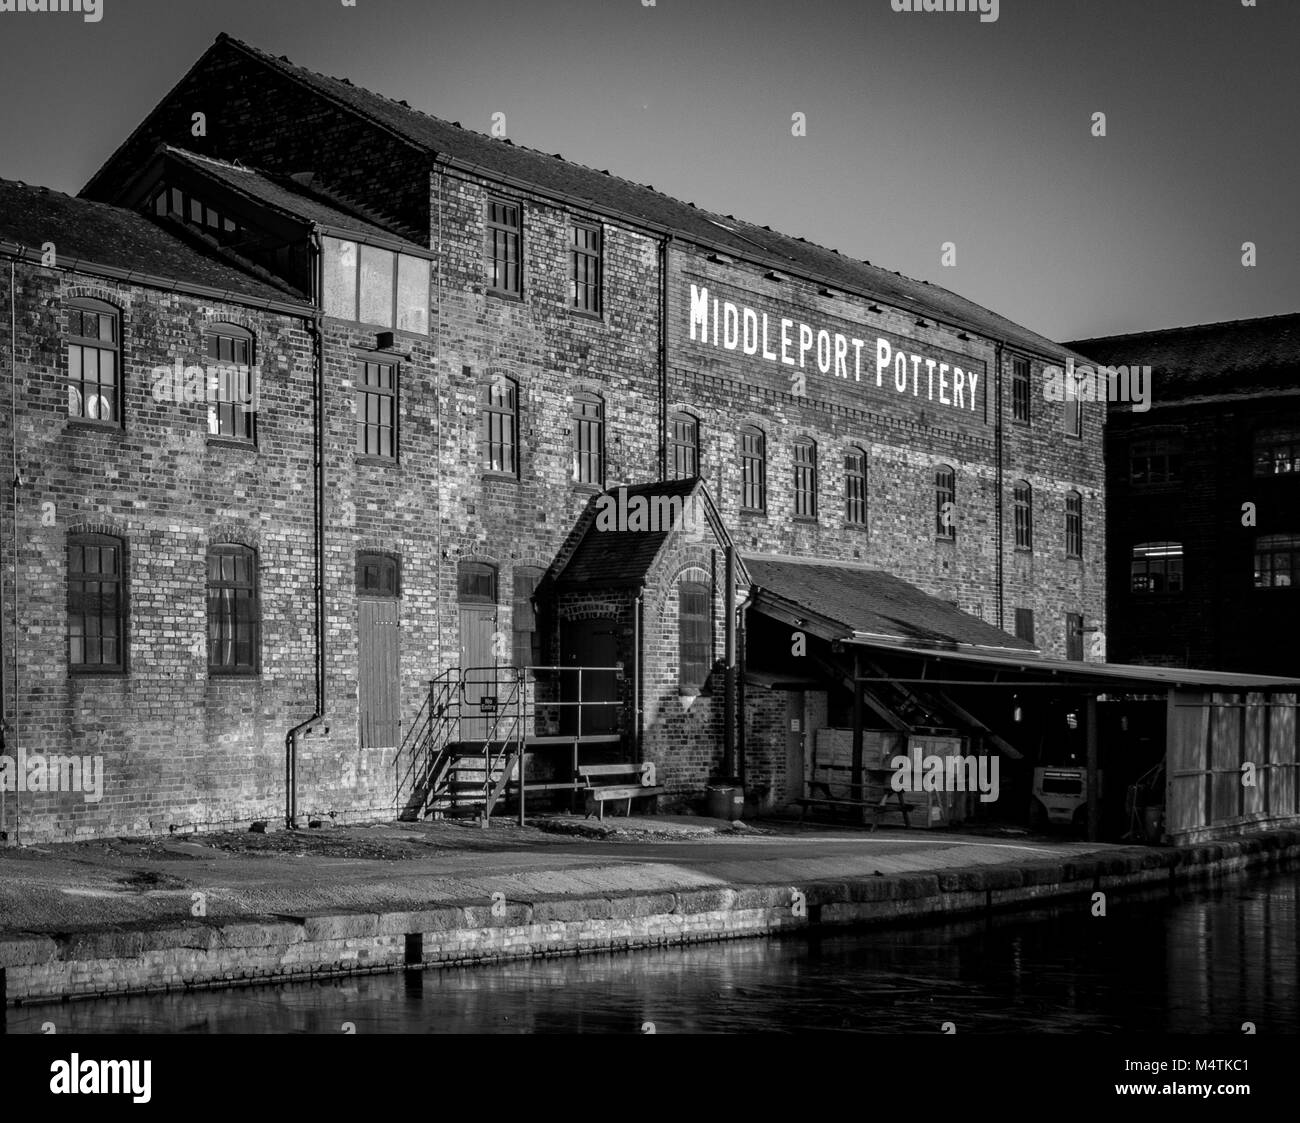 Middleport Pottery Factory - Stock Image